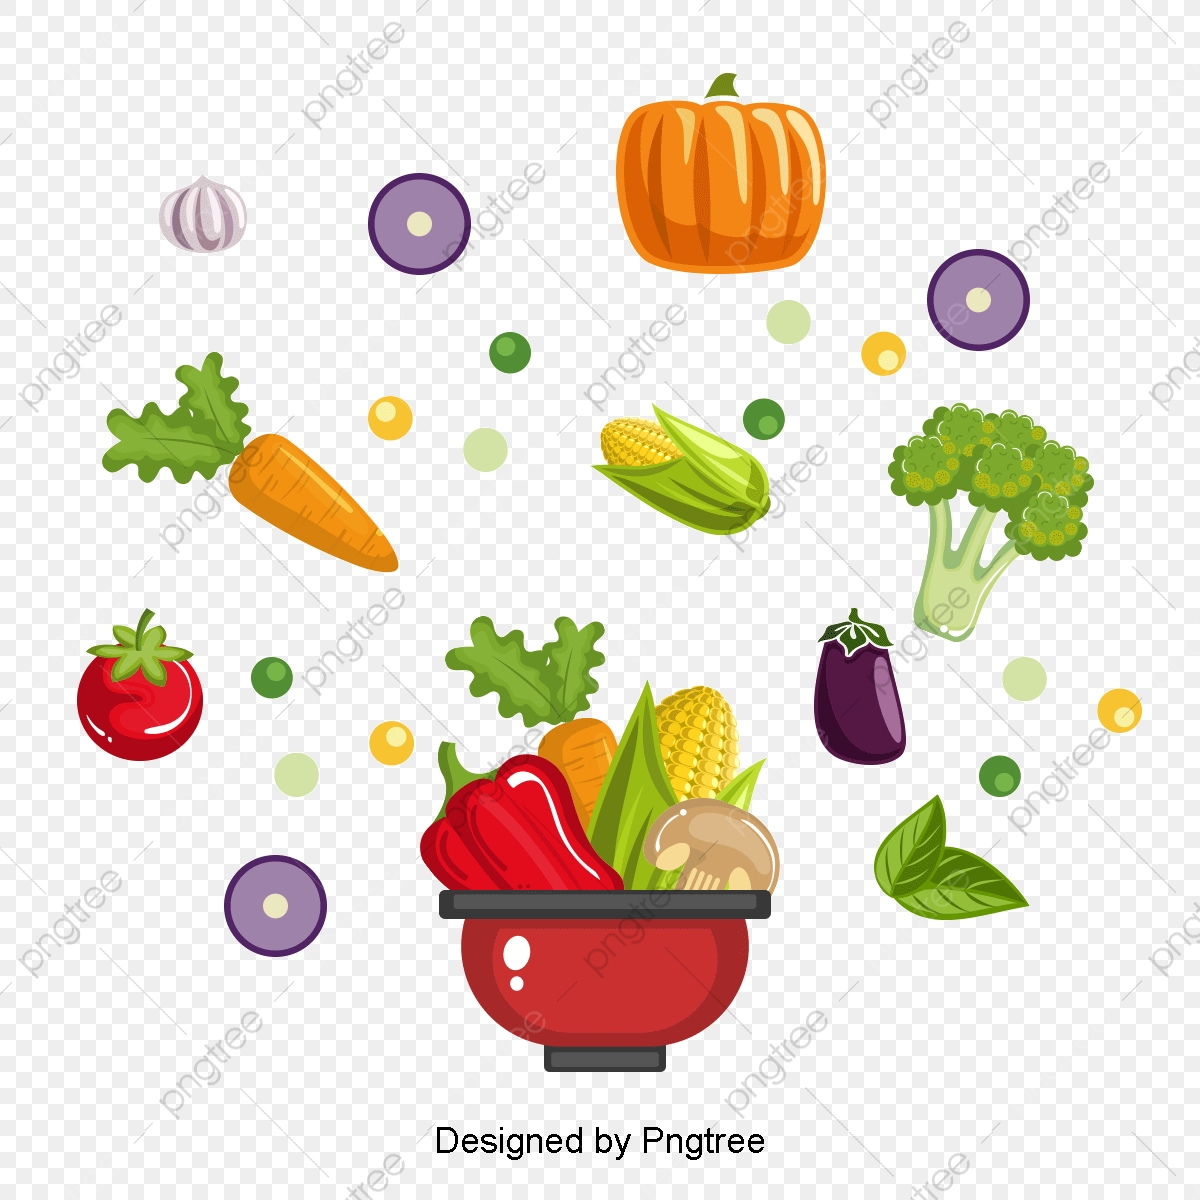 Vector Different Healthy Foods Vegetables Healthy Food Eggplant Png Transparent Clipart Image And Psd File For Free Download